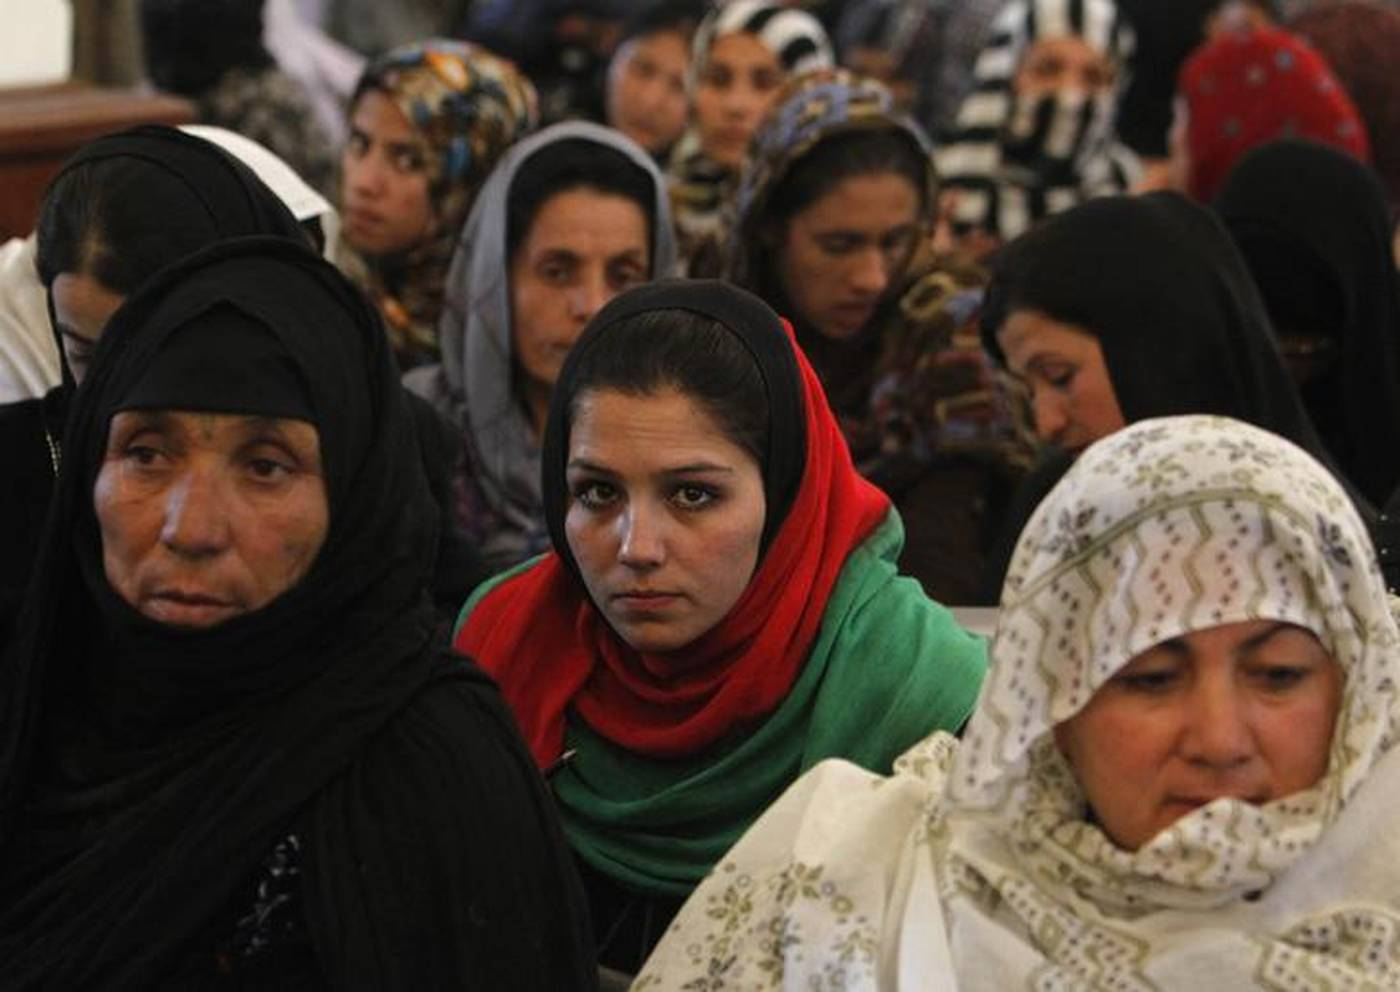 the issues of afghan women regarding getting education